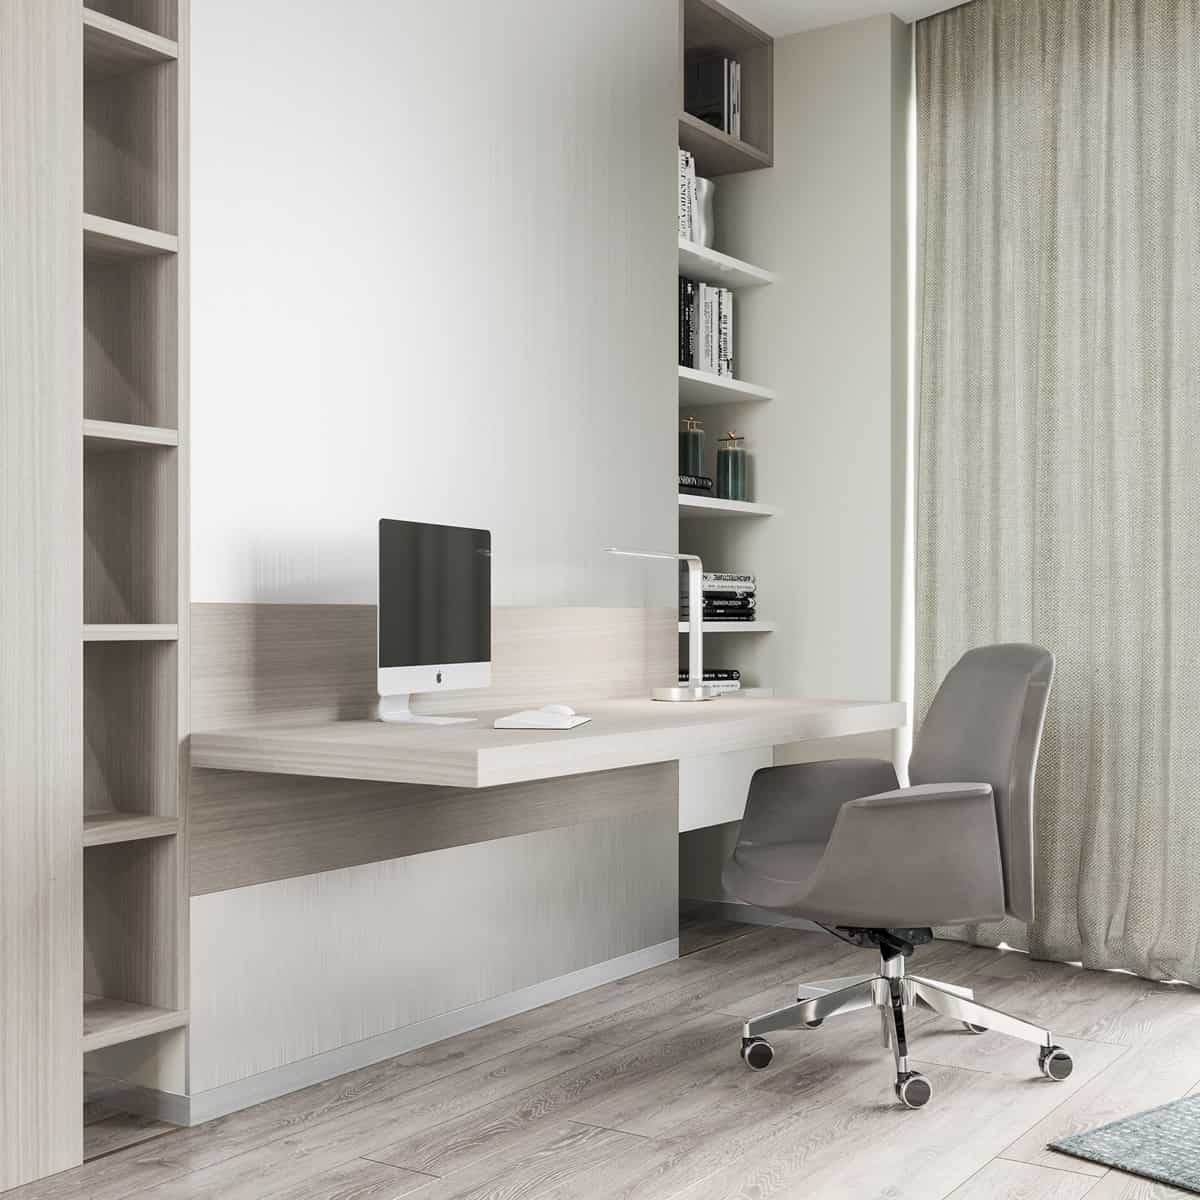 Minimal Office Space Ideas that are stylish & functional